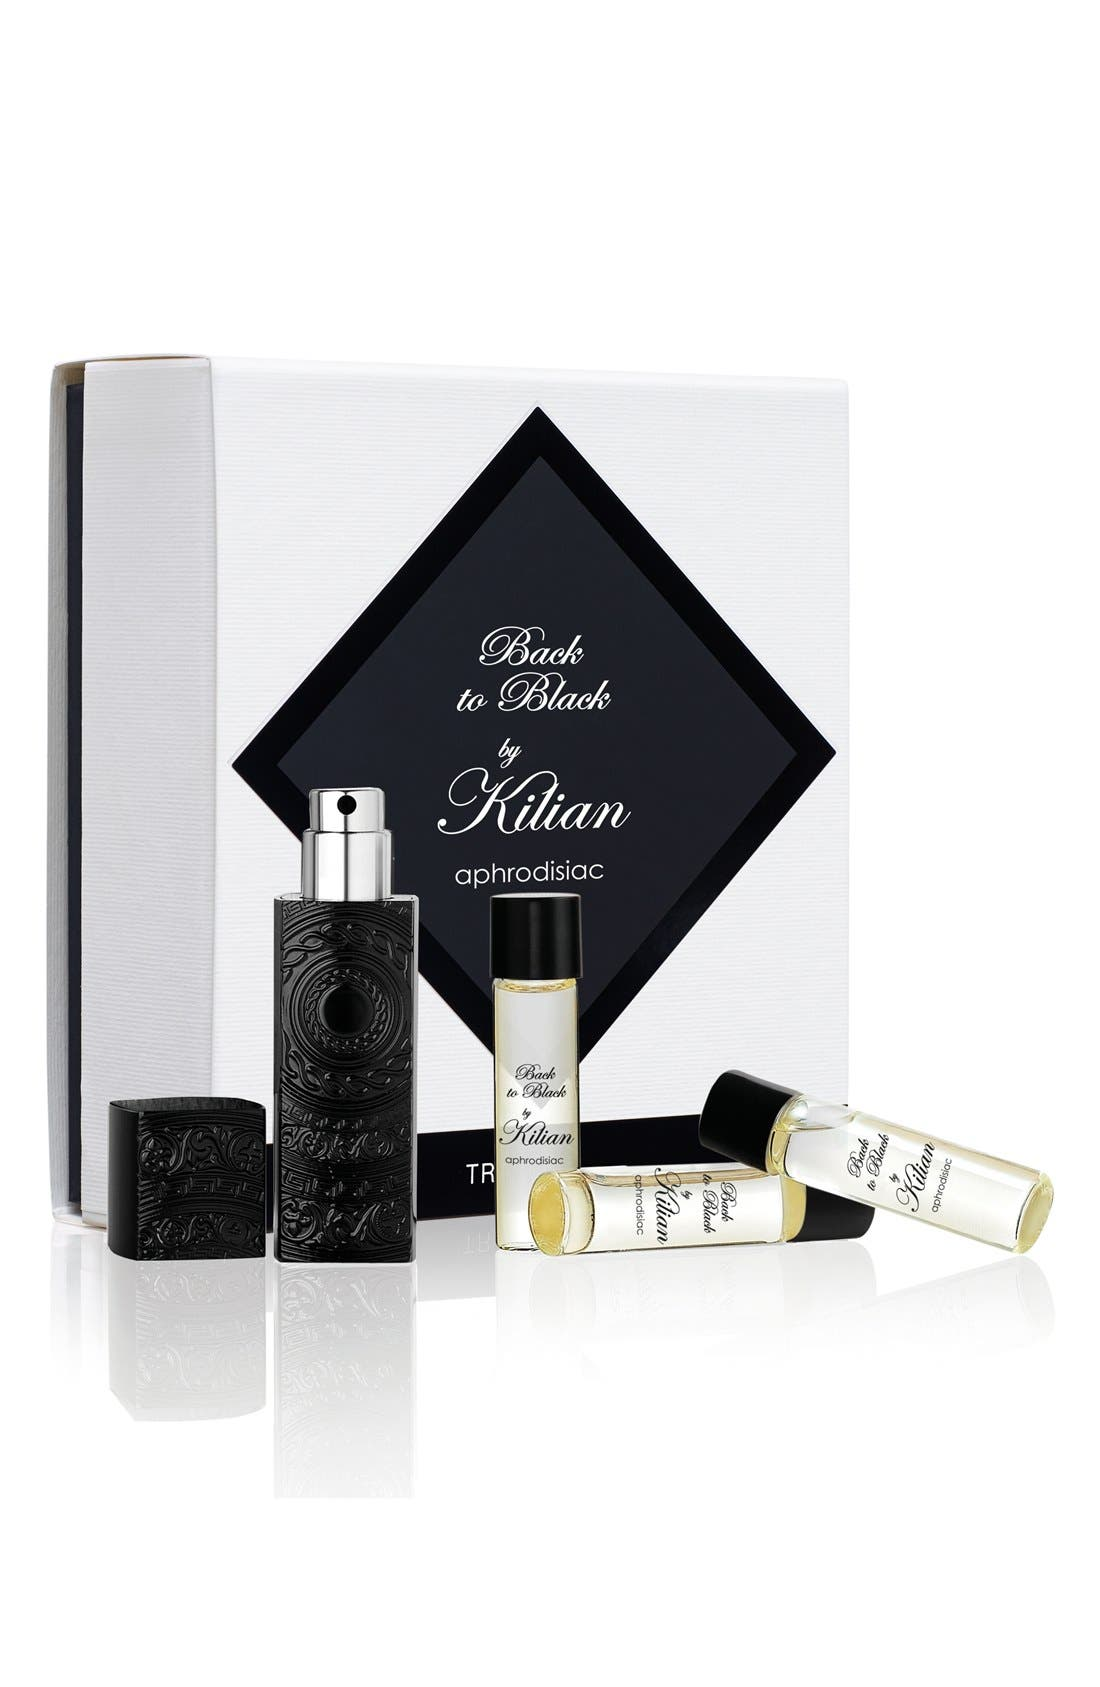 Kilian 'L'Oeuvre Noire - Back to Black, aphrodisiac' Travel Set